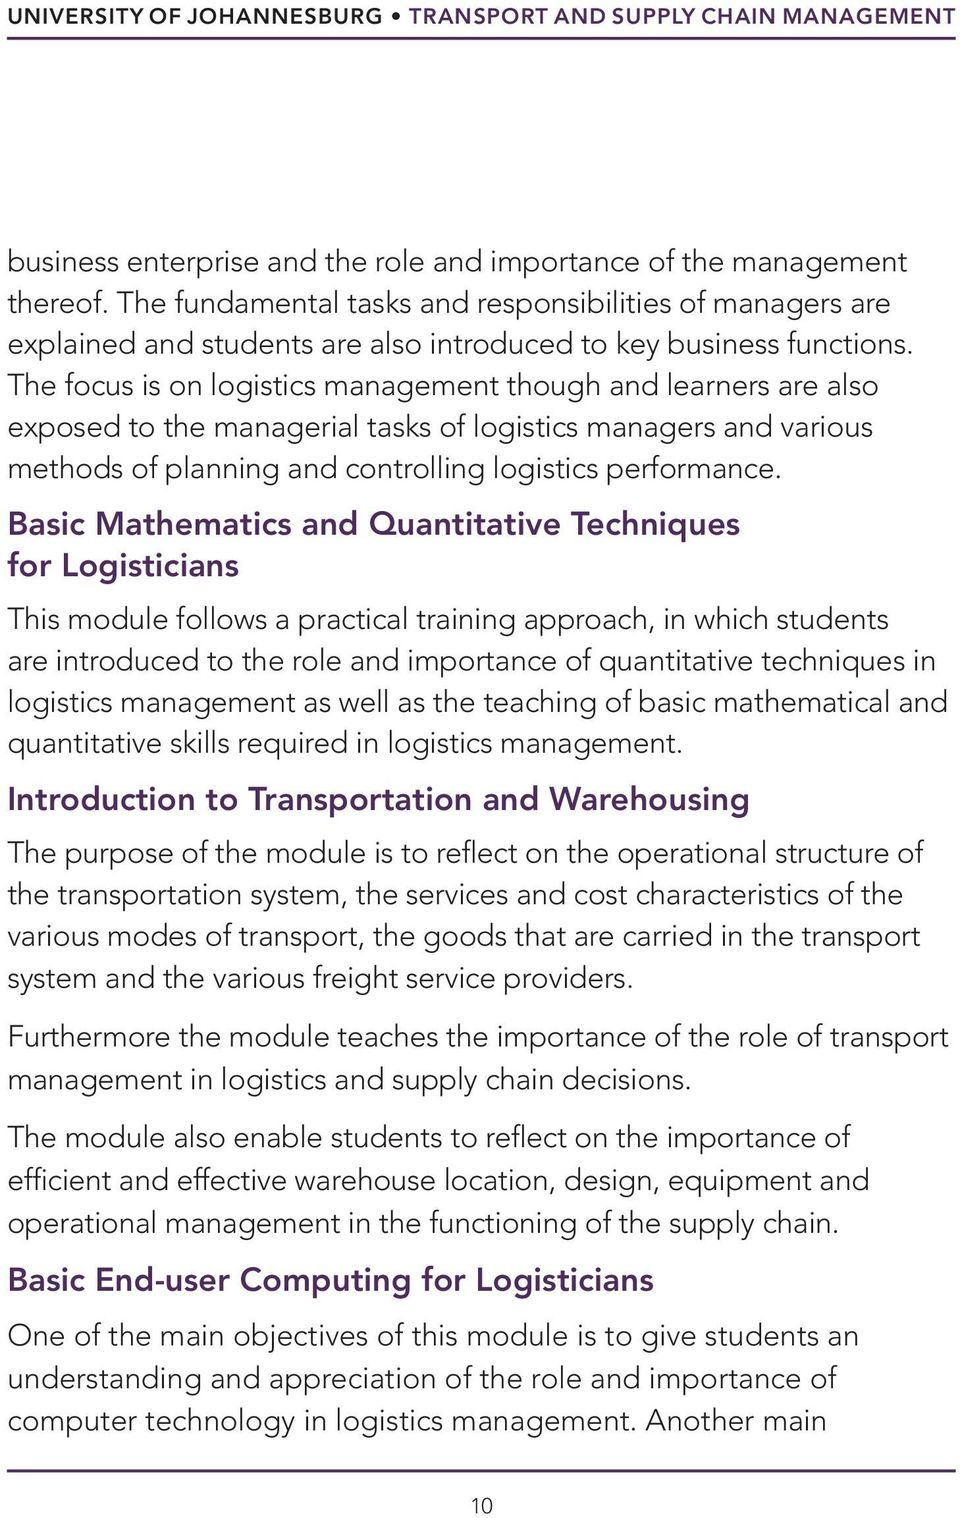 The focus is on logistics management though and learners are also exposed to the managerial tasks of logistics managers and various methods of planning and controlling logistics performance.